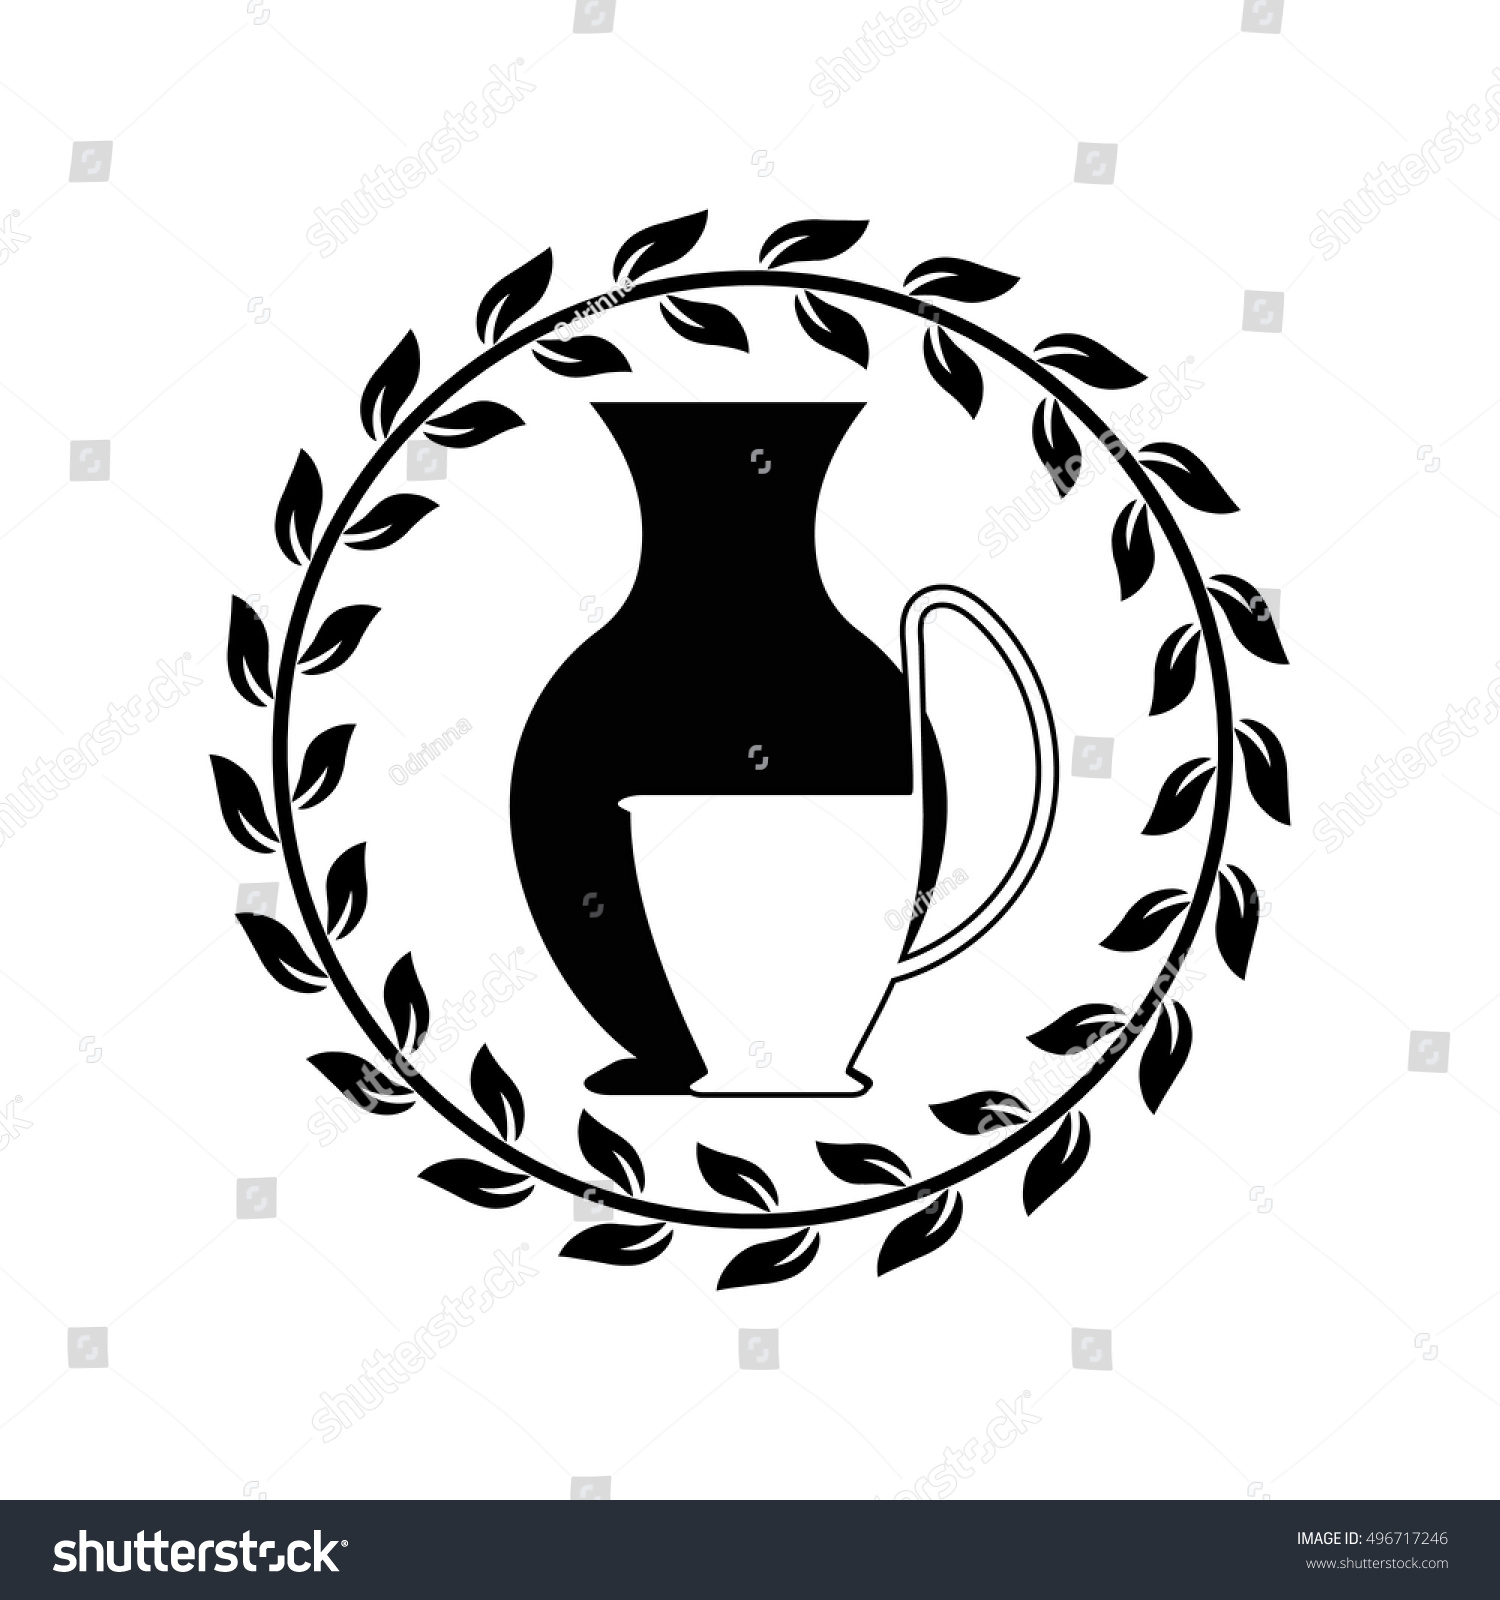 Vector ancient greek vases icon amphora stock vector 496717246 vector ancient greek vases icon amphora with kyathos and olive leaves pattern the symbols biocorpaavc